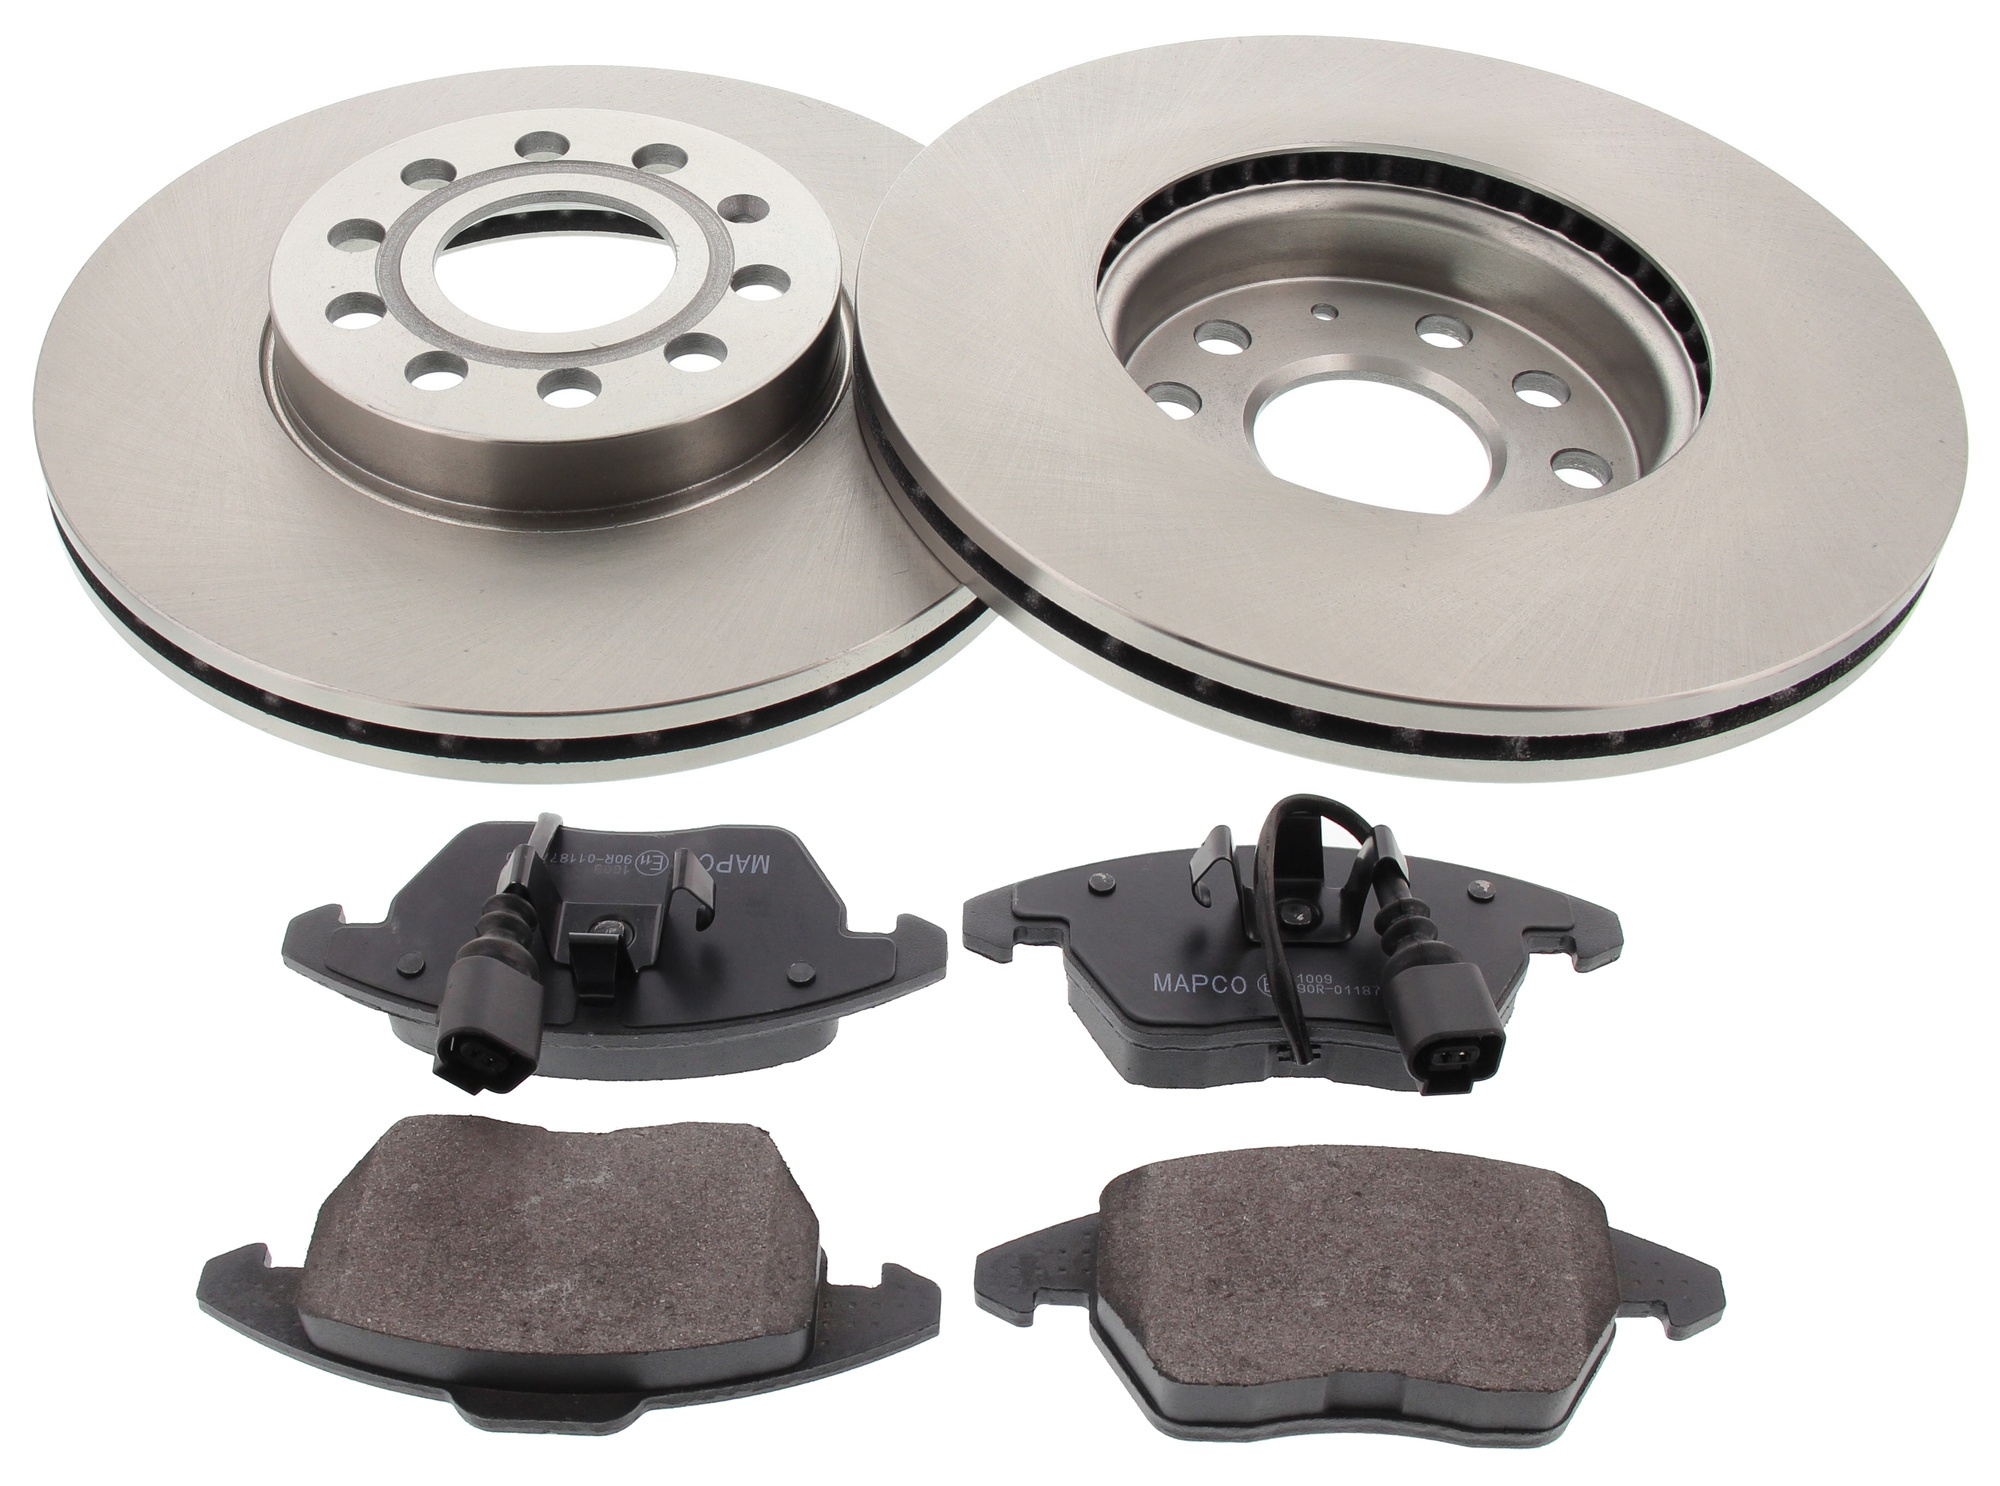 MAPCO 47830 brake kit